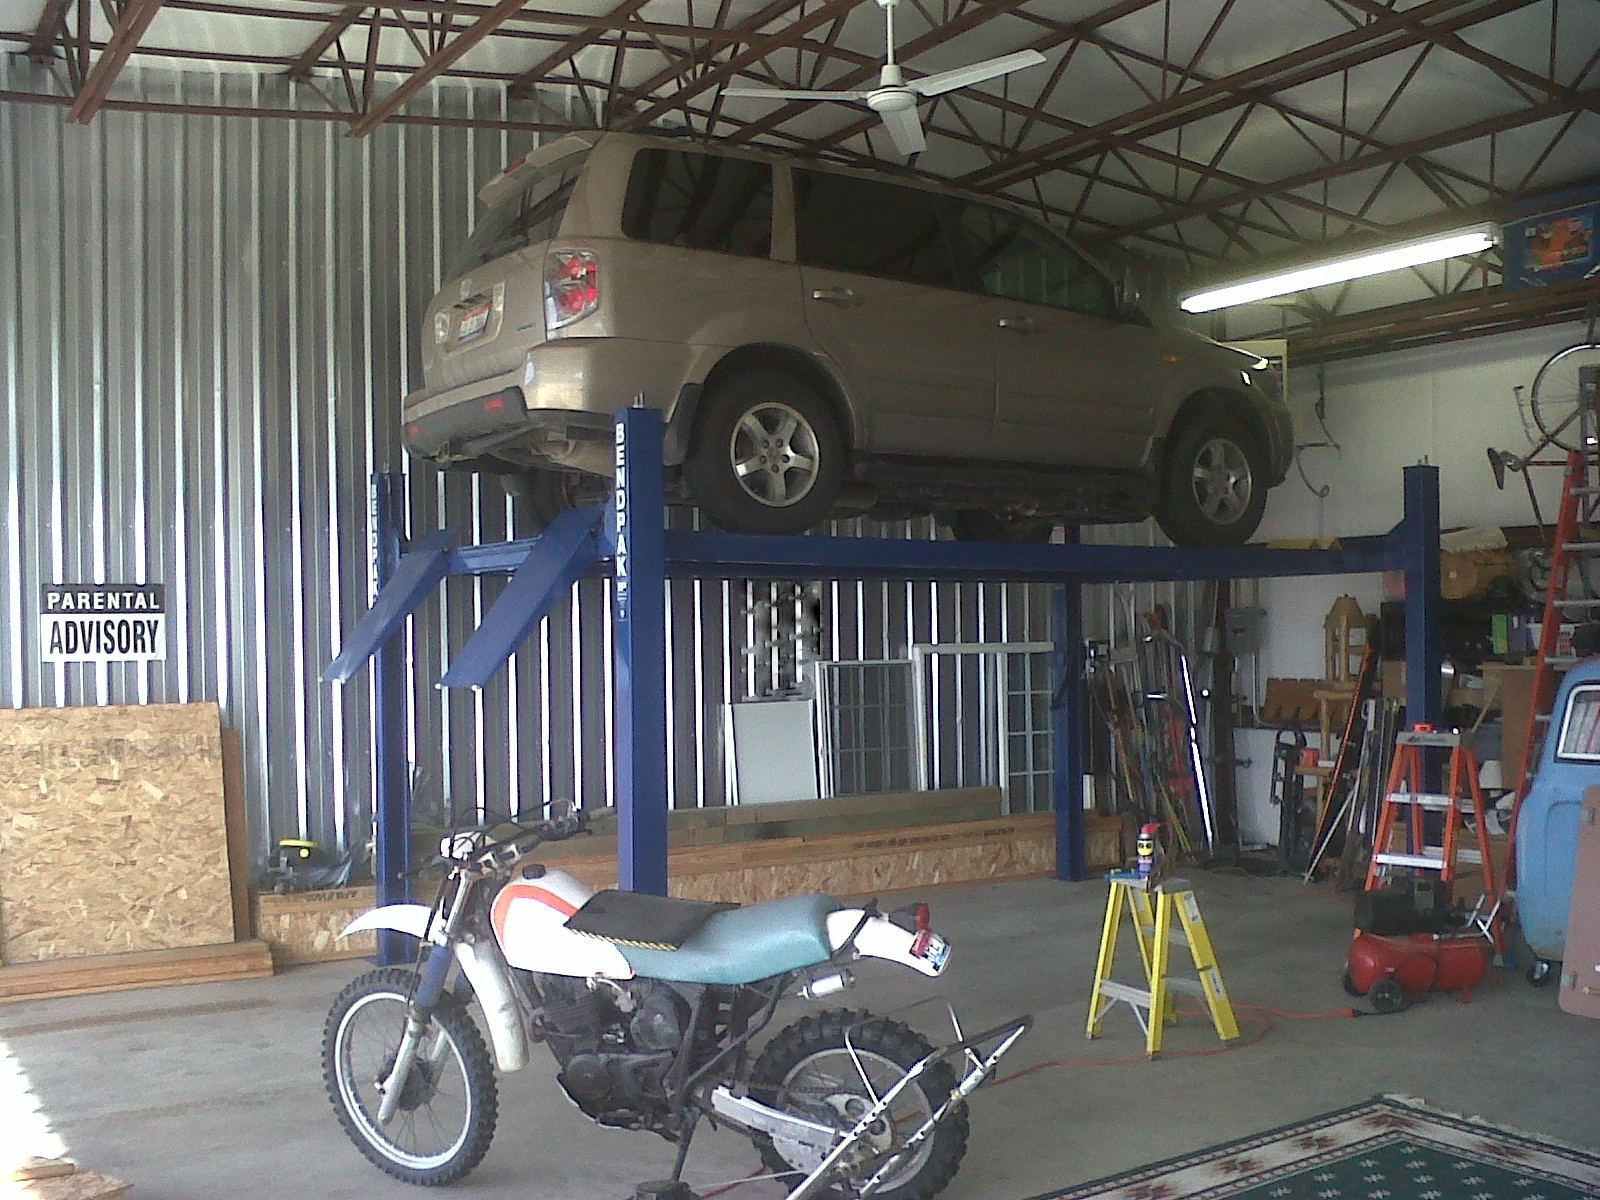 Used Car Lifts for Sale Craigslist Best Of Post Lift Four Post Lift Craigslist